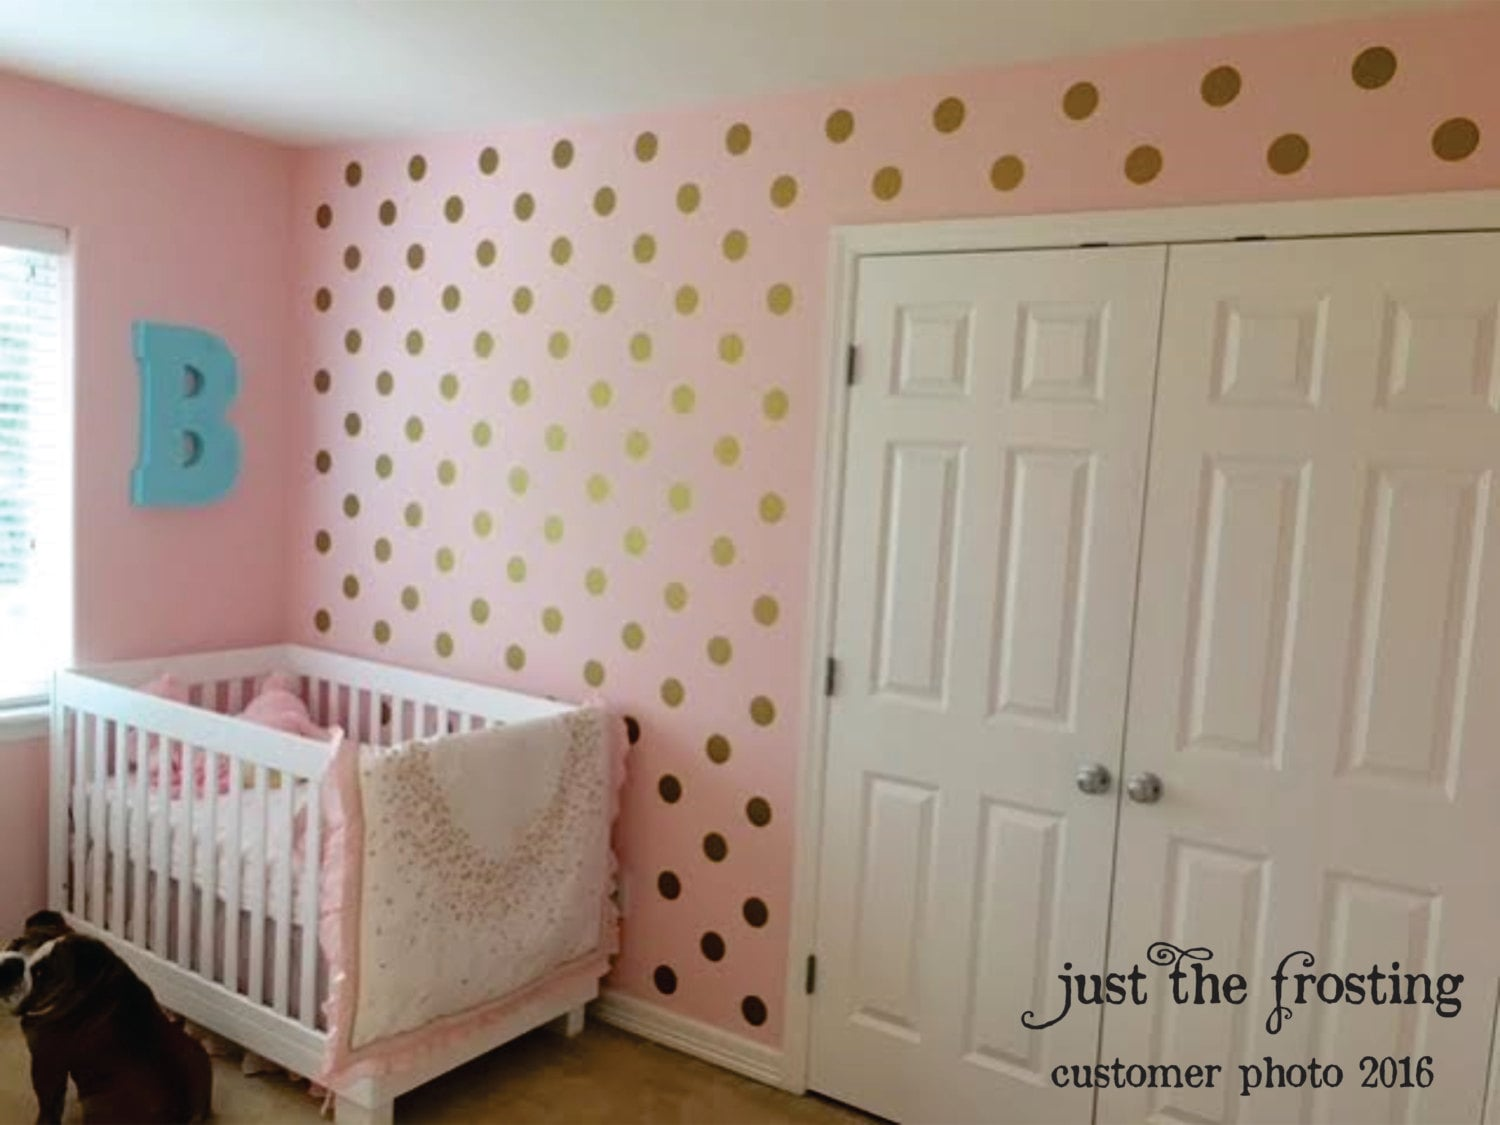 polka dot wall decals gold wall decal gold dot decals. Black Bedroom Furniture Sets. Home Design Ideas